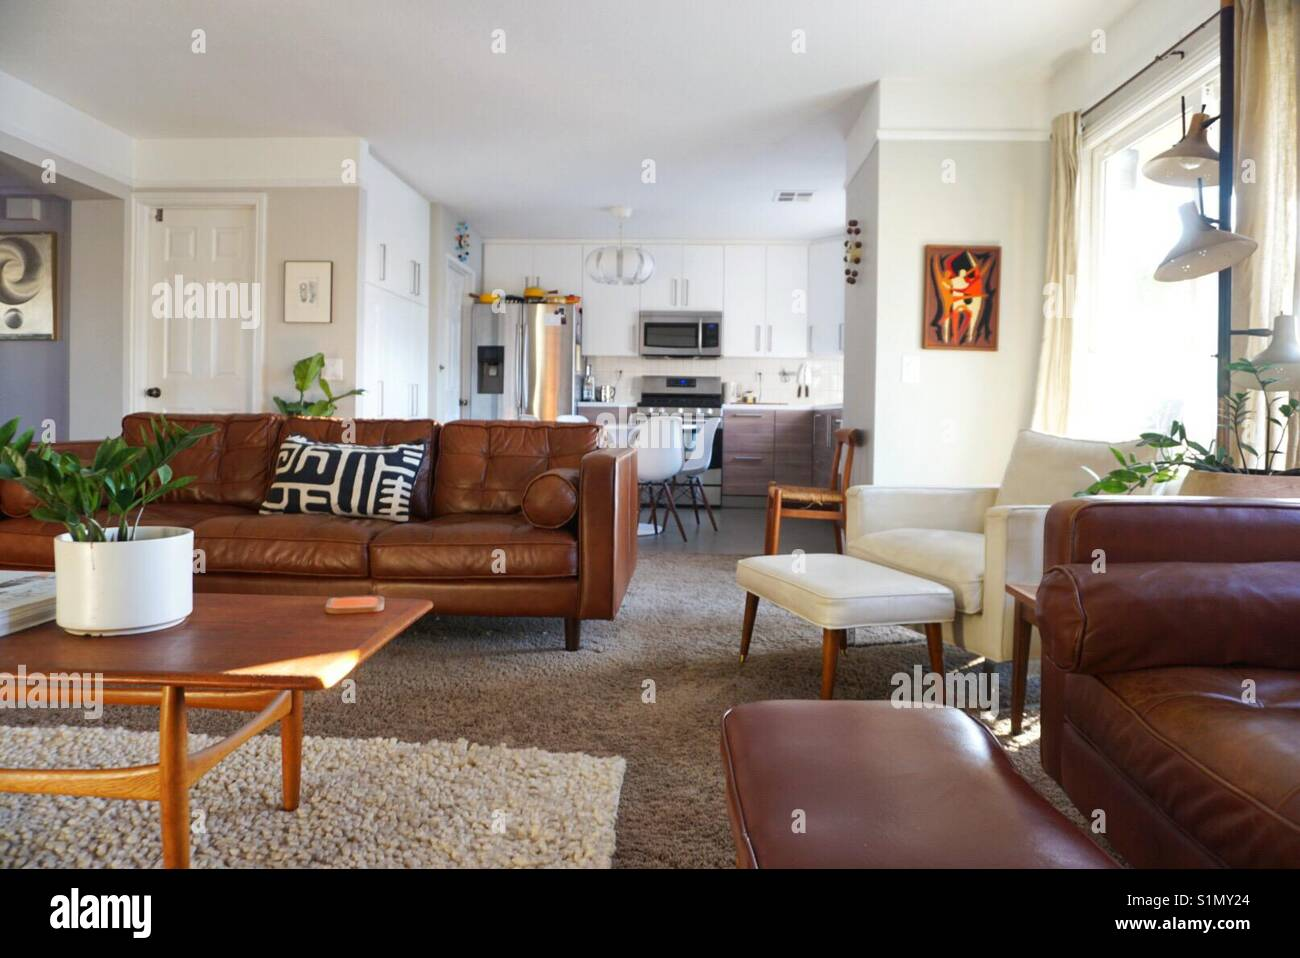 Mid century modern living room Stock Photo: 310861548 - Alamy